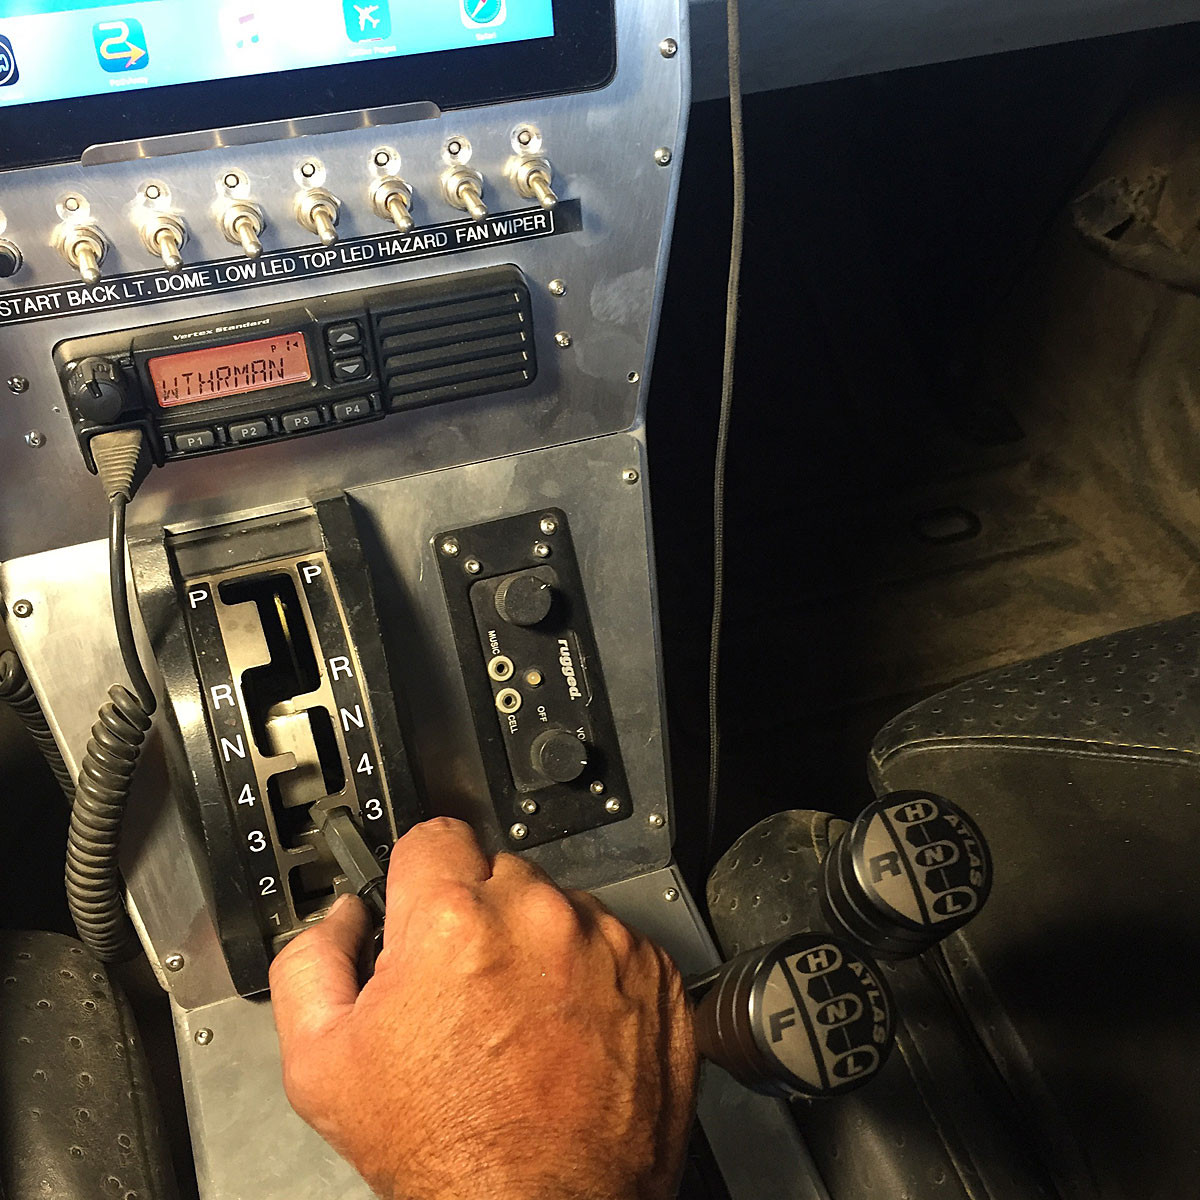 Here is how ergonomic the shifters are laid out